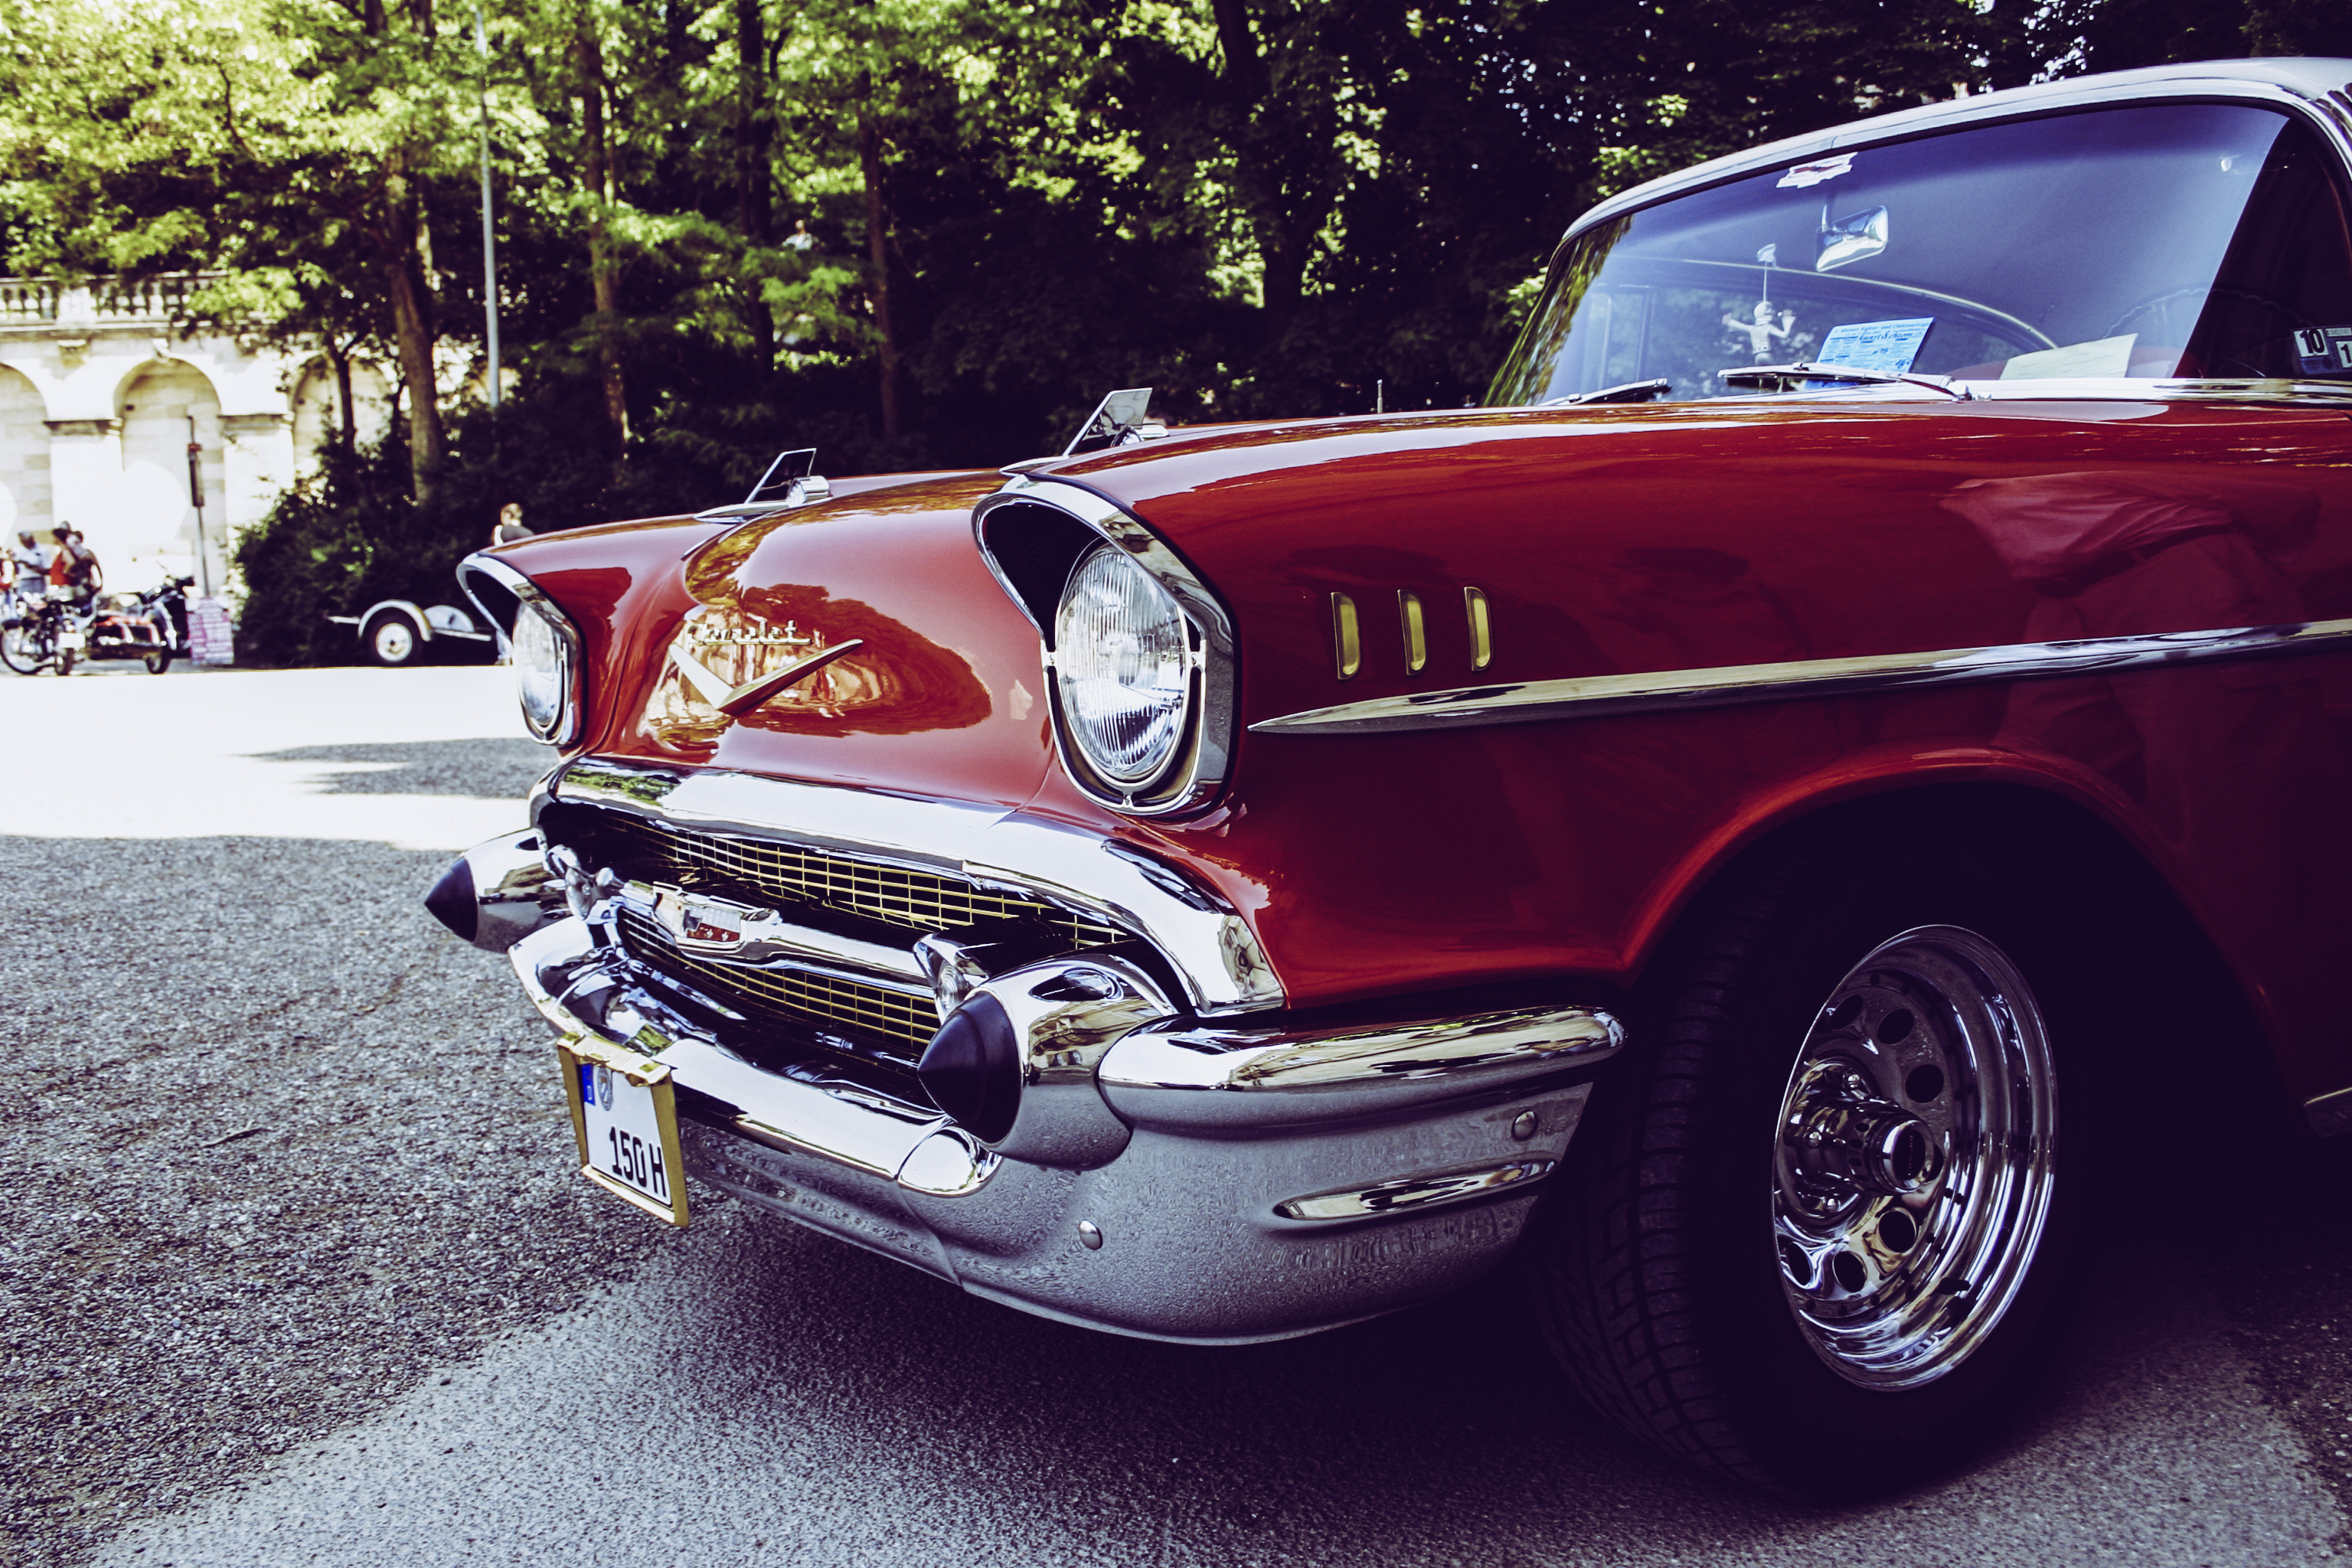 red and gray vintage car on gray concrete road during daytime - Classic Car Colors